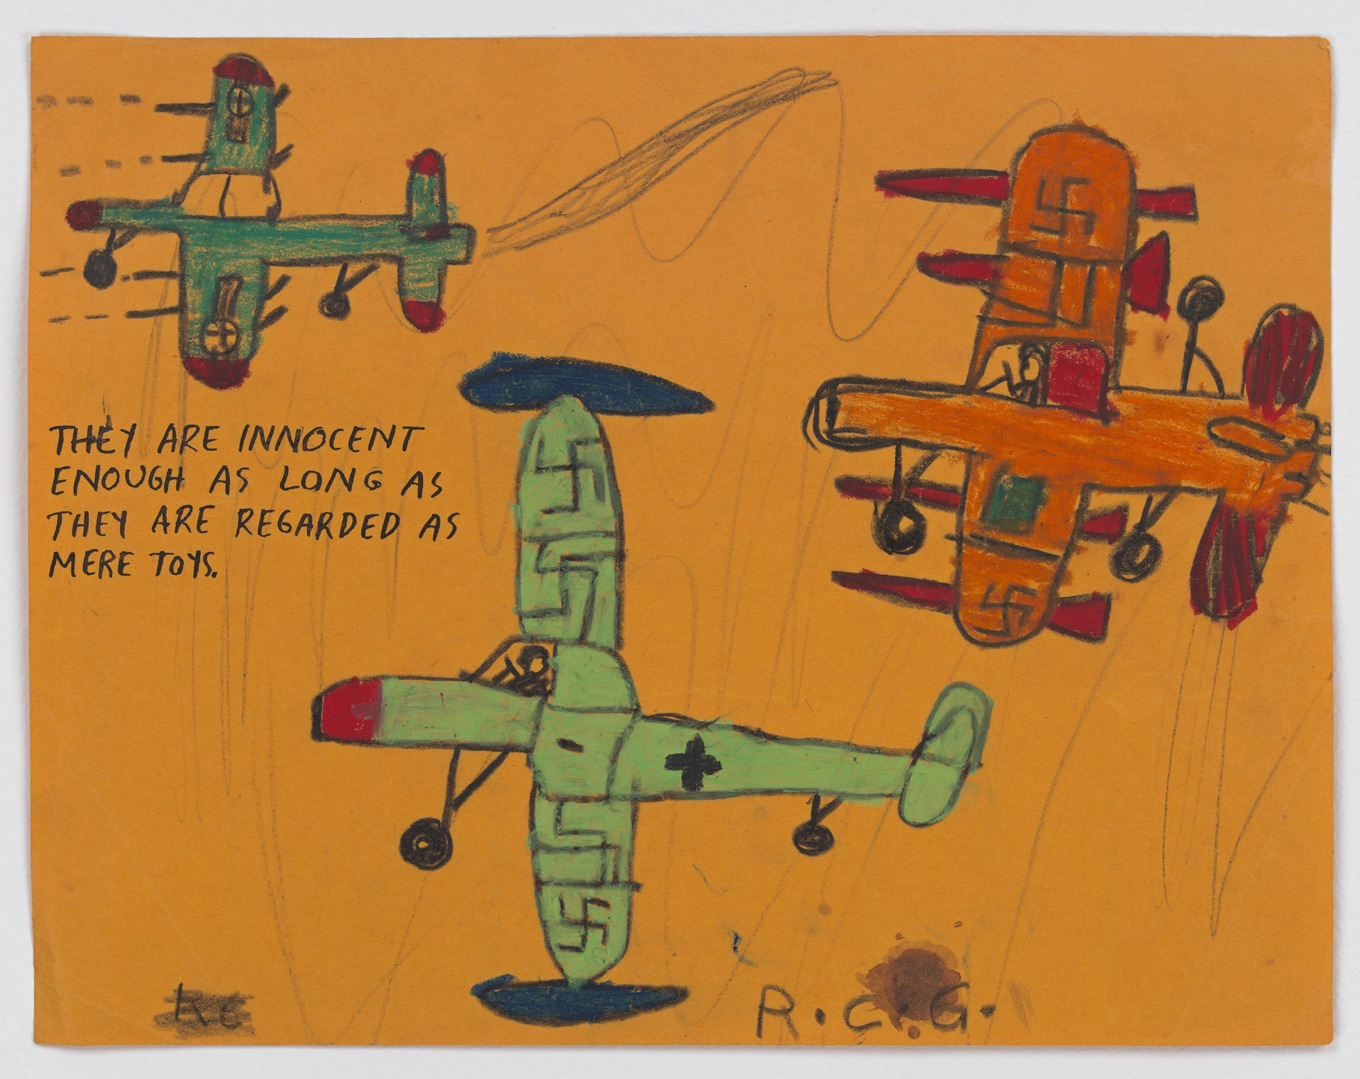 No Title (They are innocent...), ca.1960s/2000s. Crayon and pencil on paper, 8 1/2 x 11in (21.6 x 27.9cm). Courtesy David Zwirner, New York